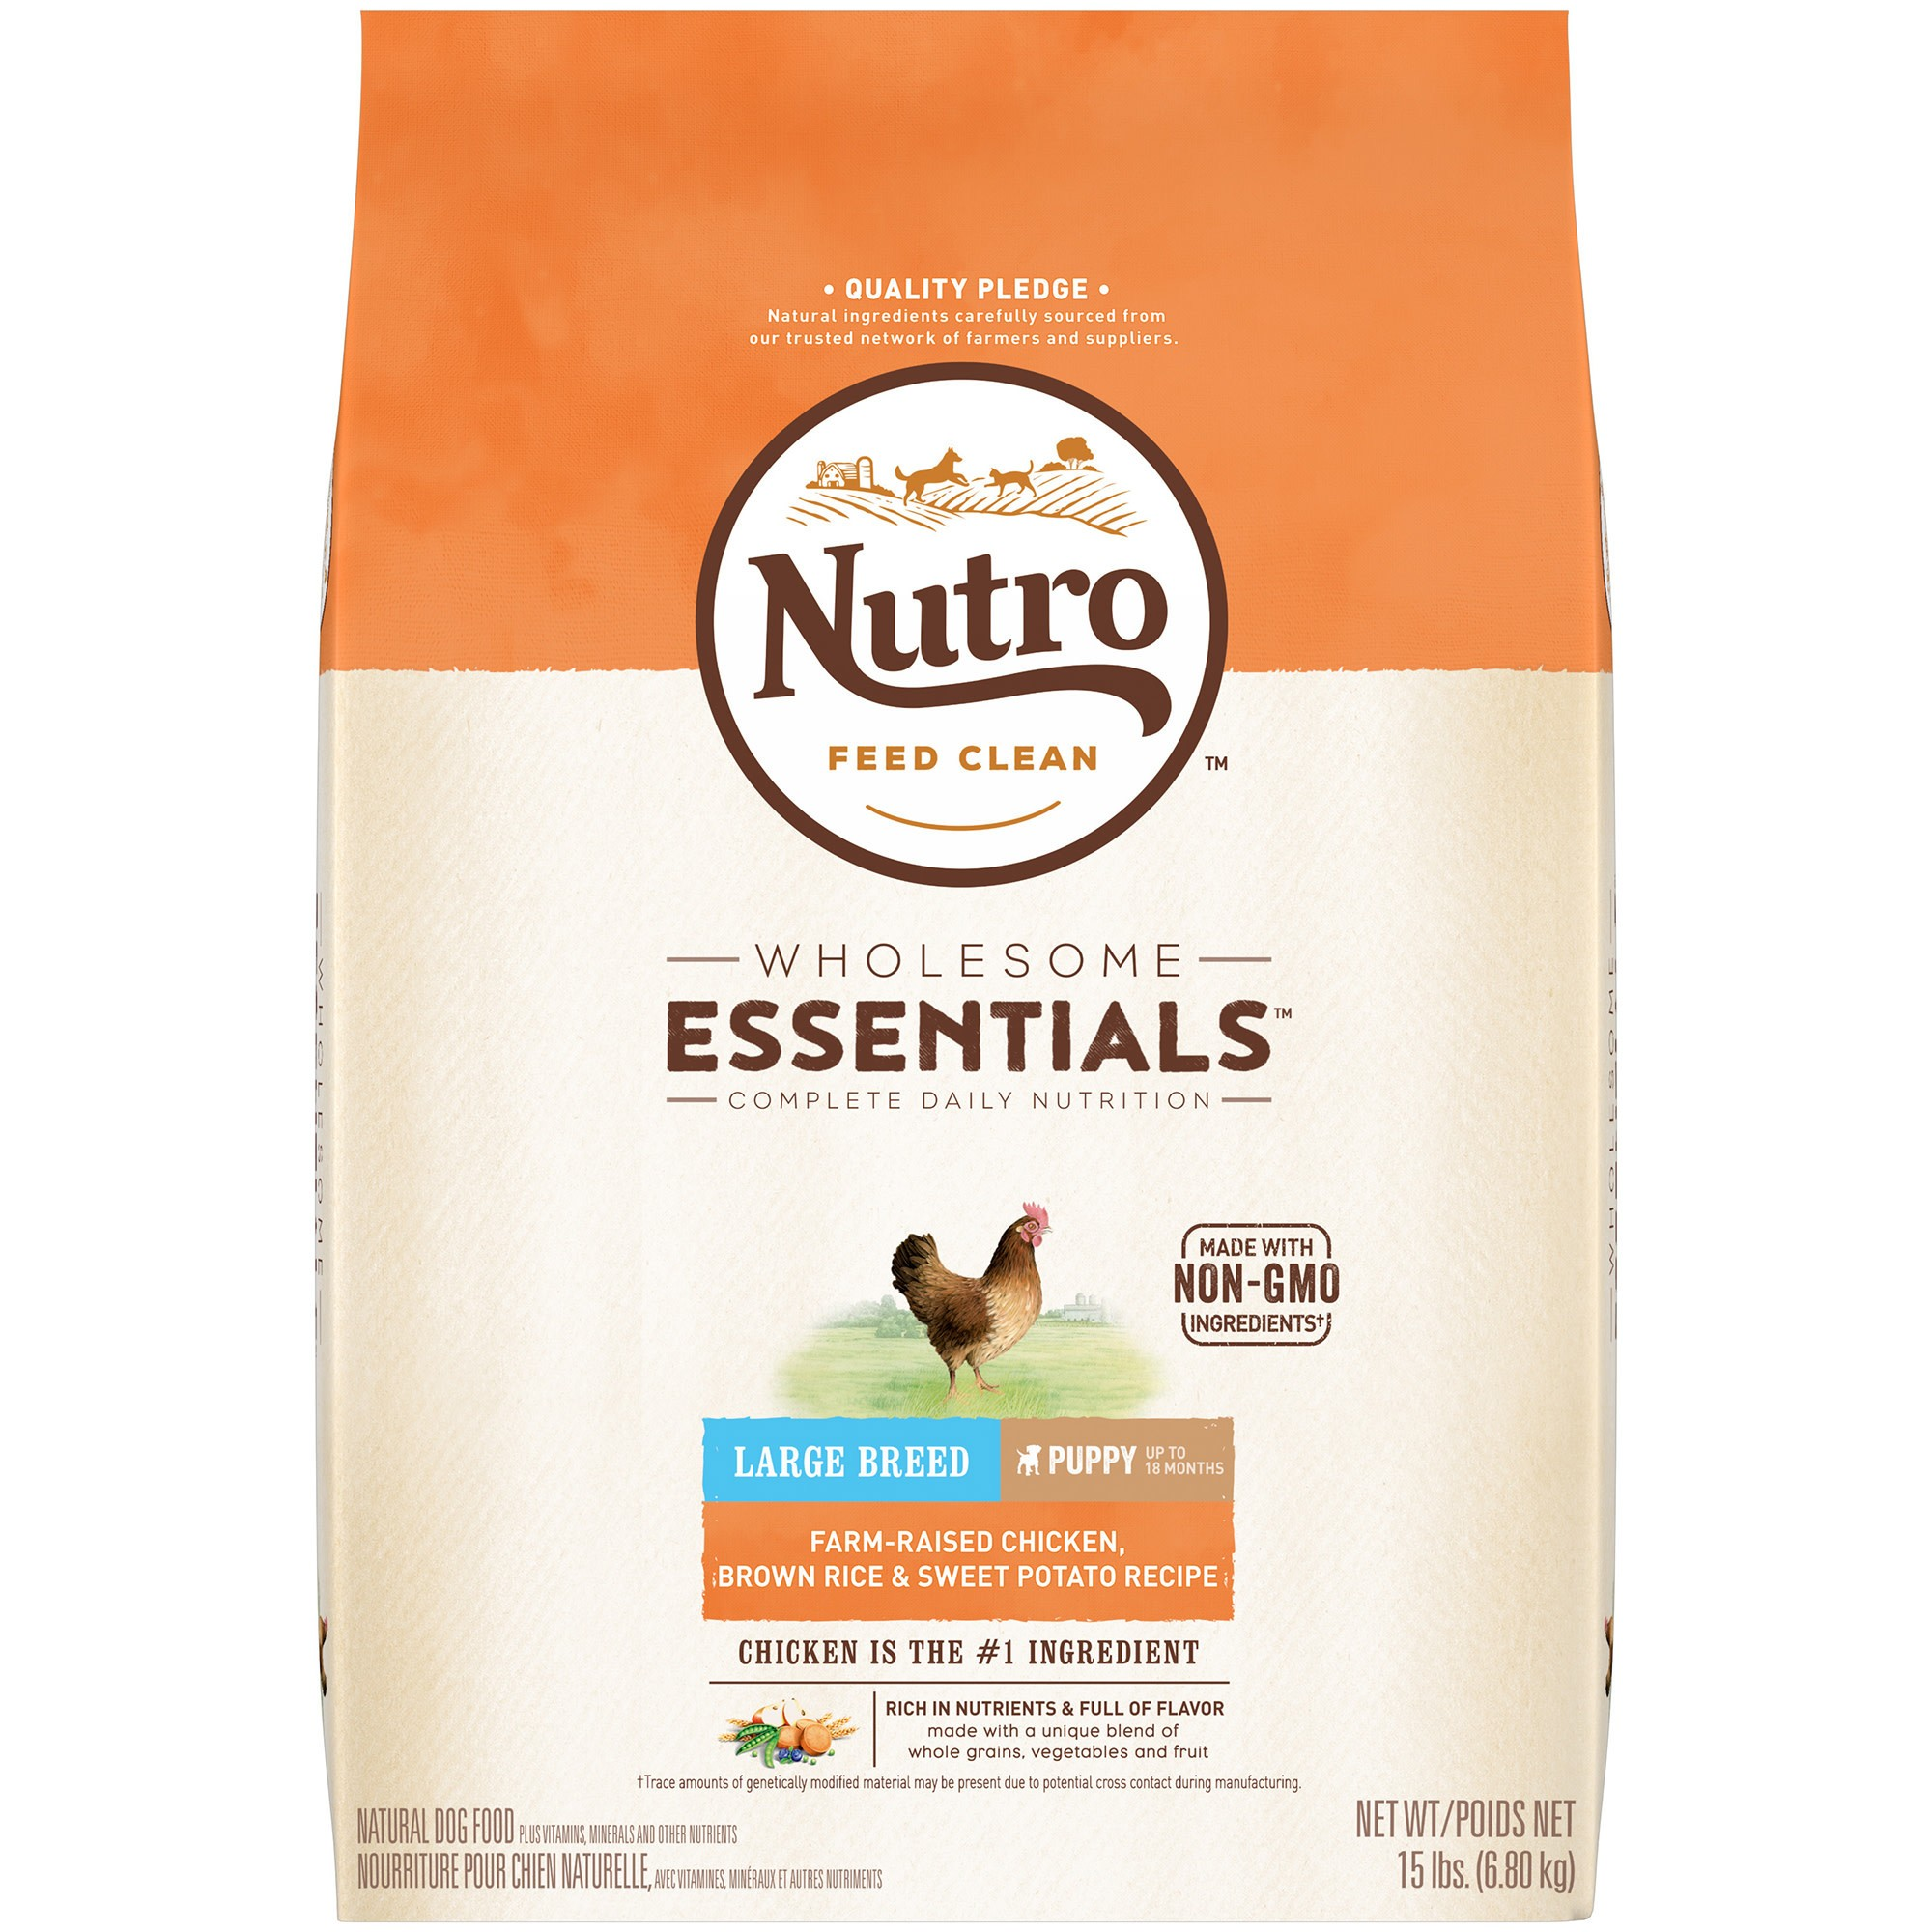 Nutro Farm Raised Chicken Brown Rice And Sweet Potato Recipe